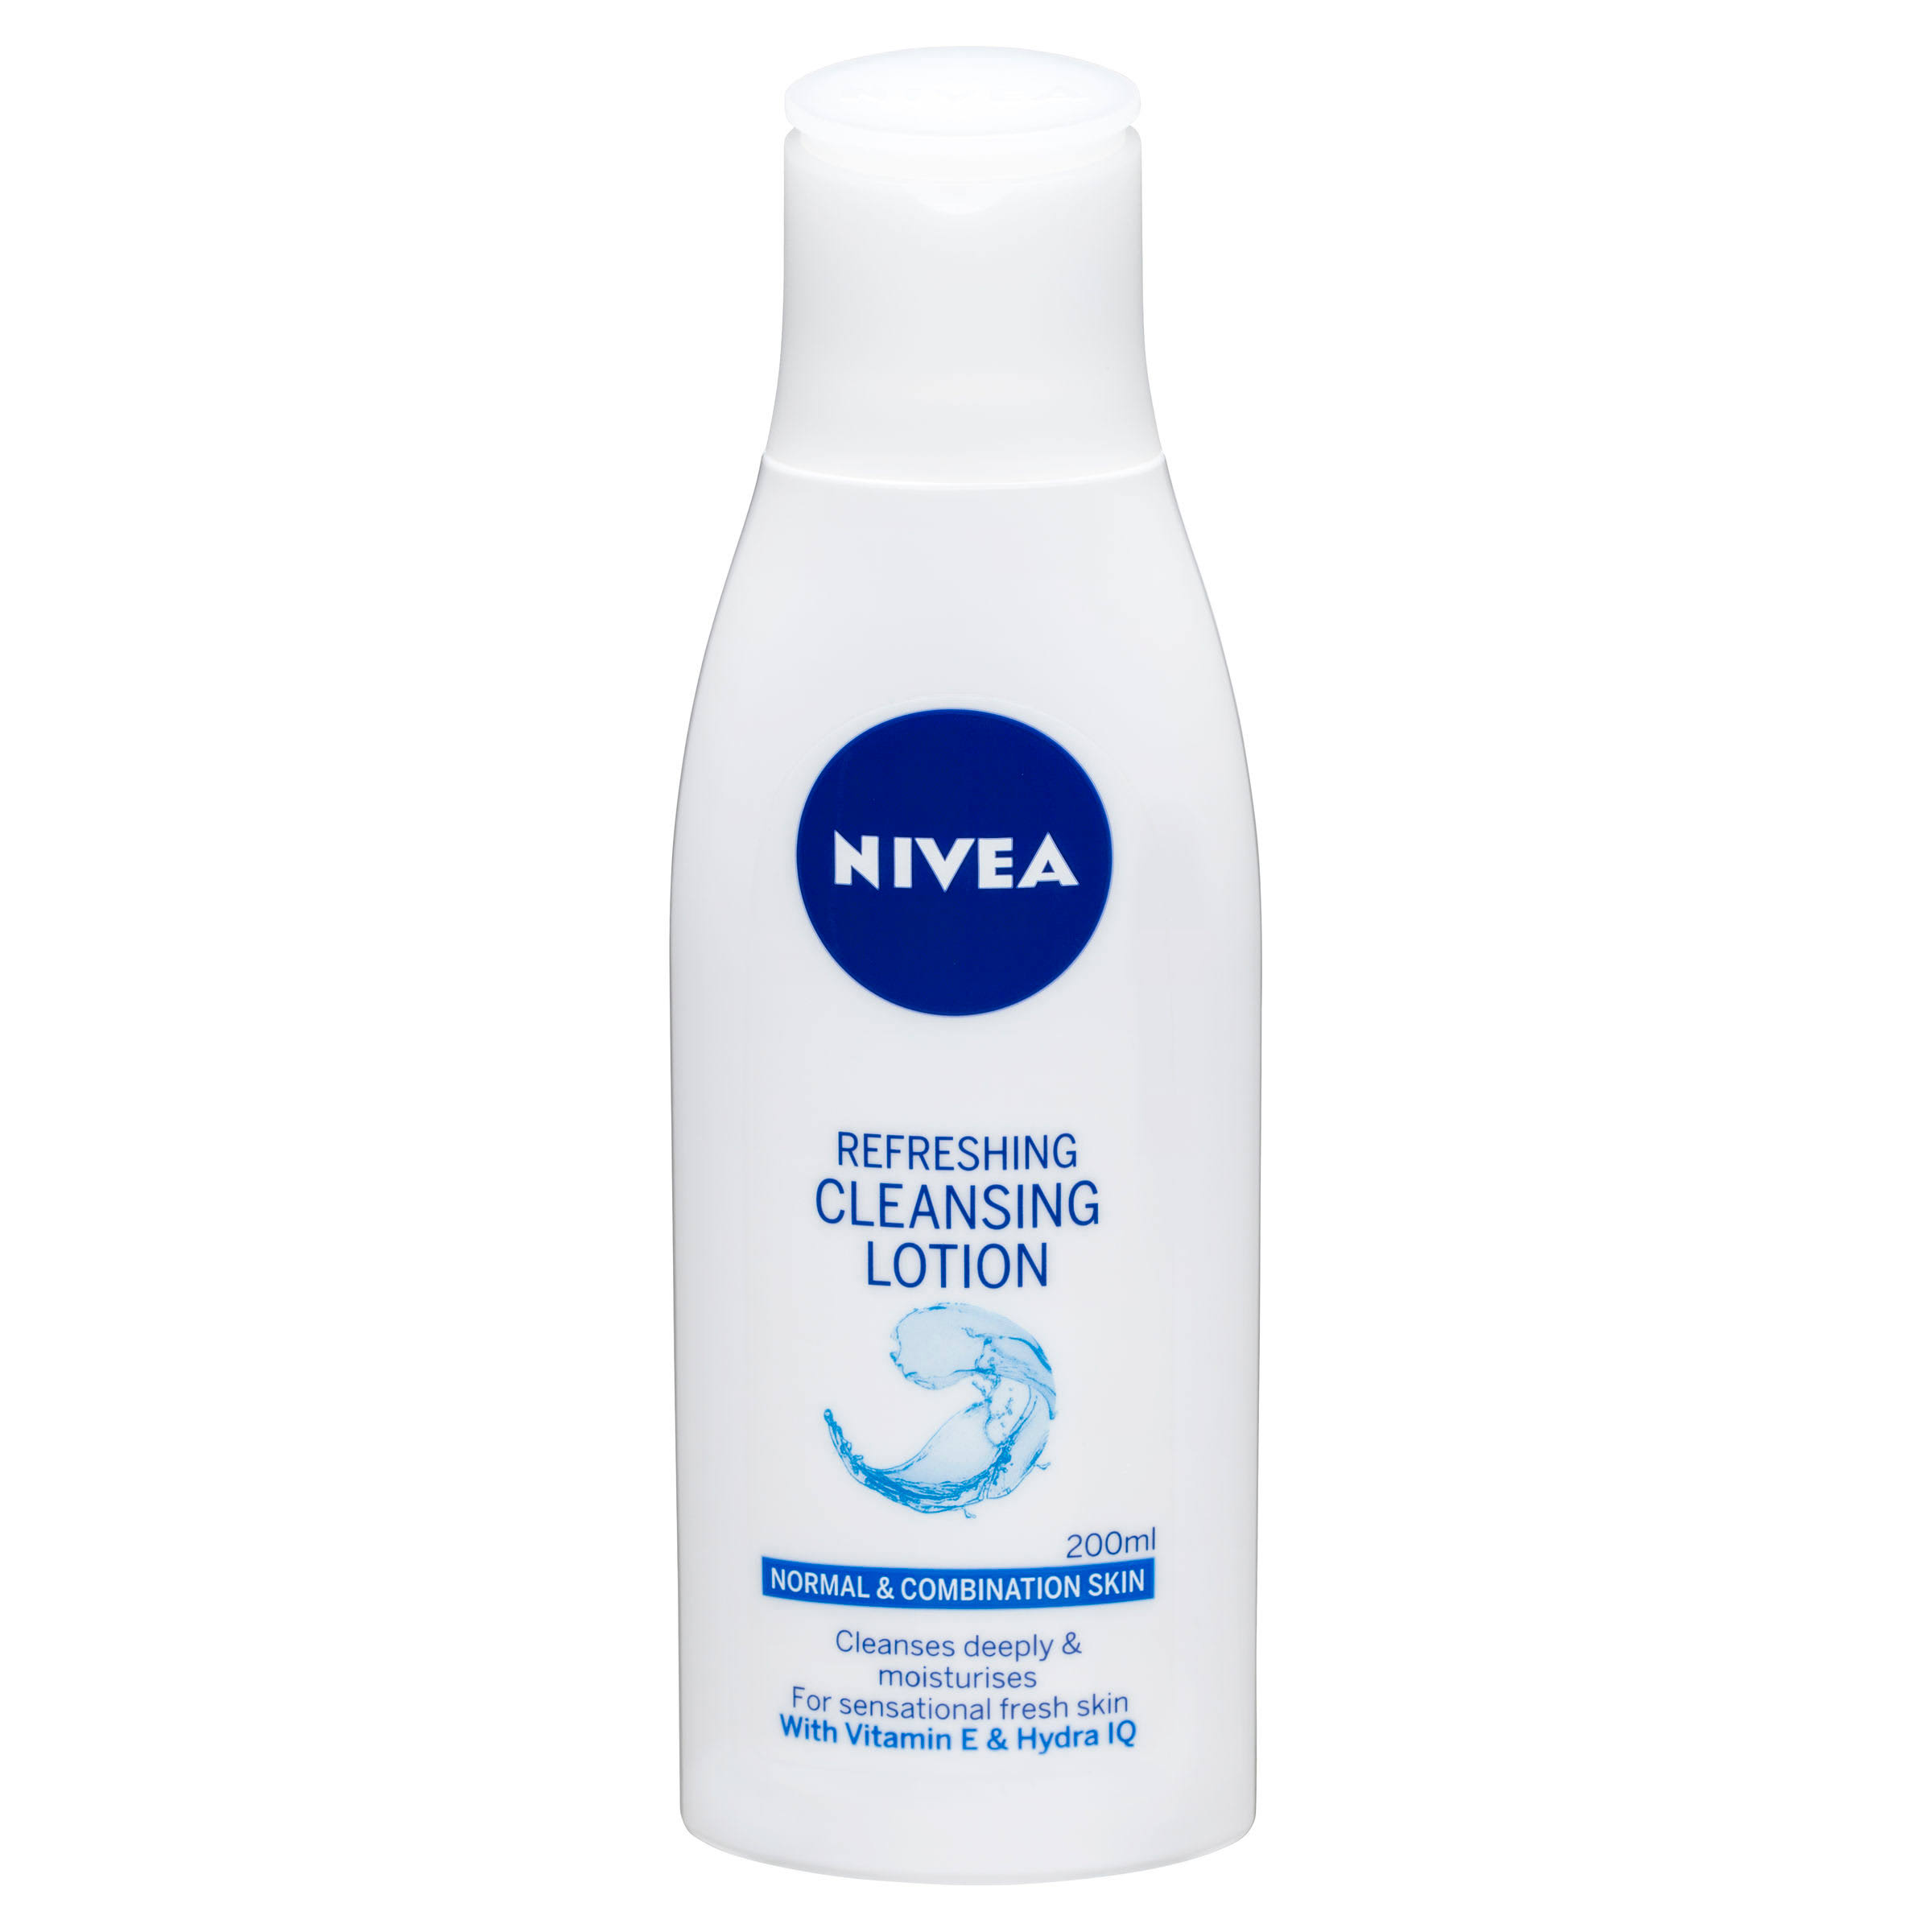 Nivea Daily Essentials Refreshing Cleansing Lotion - 200ml